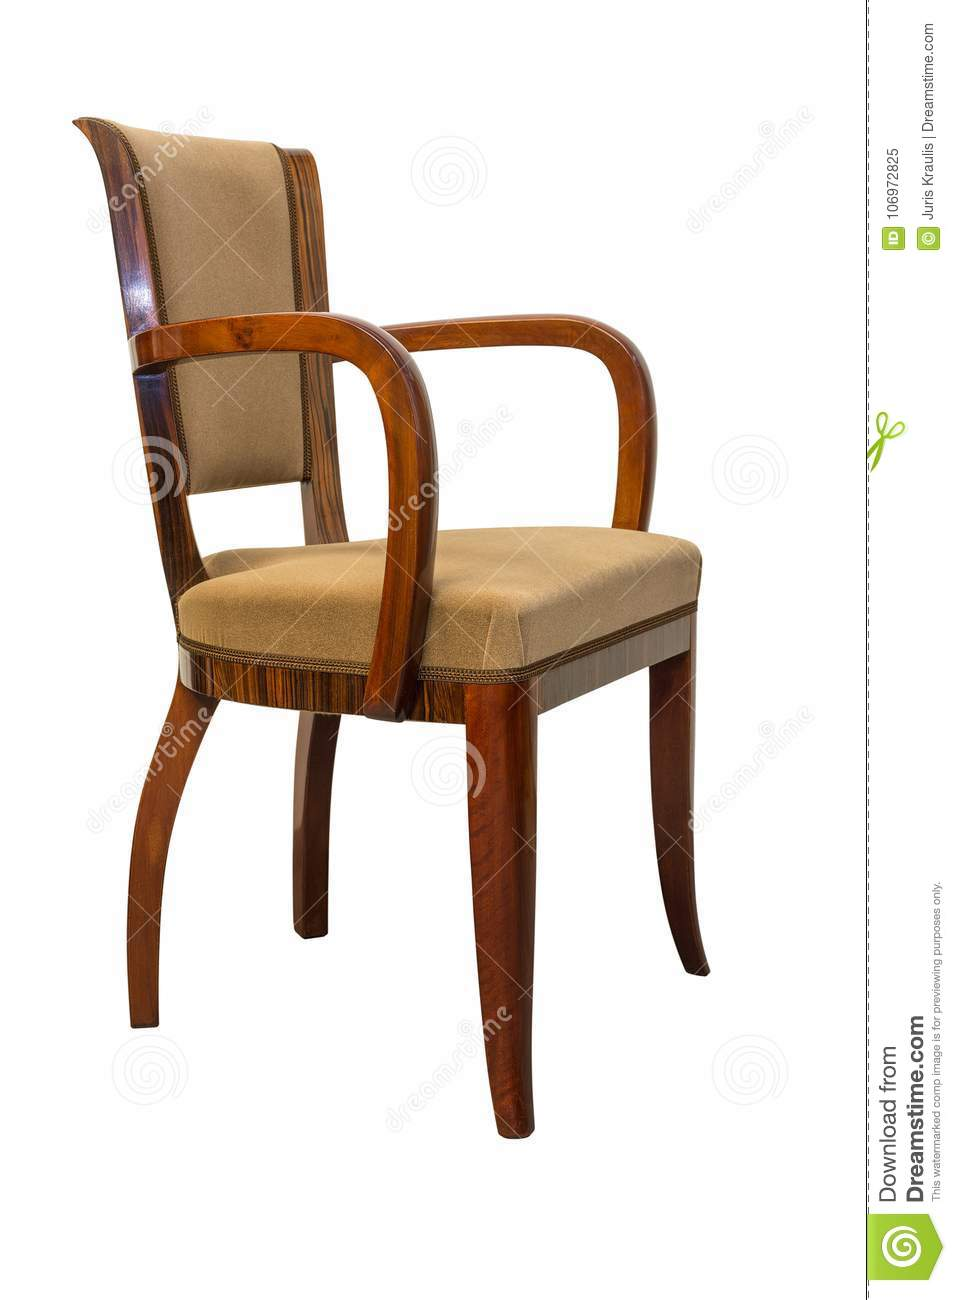 vintage art deco furniture. Download Vintage Art Deco Chair Isolated On White Background Stock Image - Of Carved, Furniture